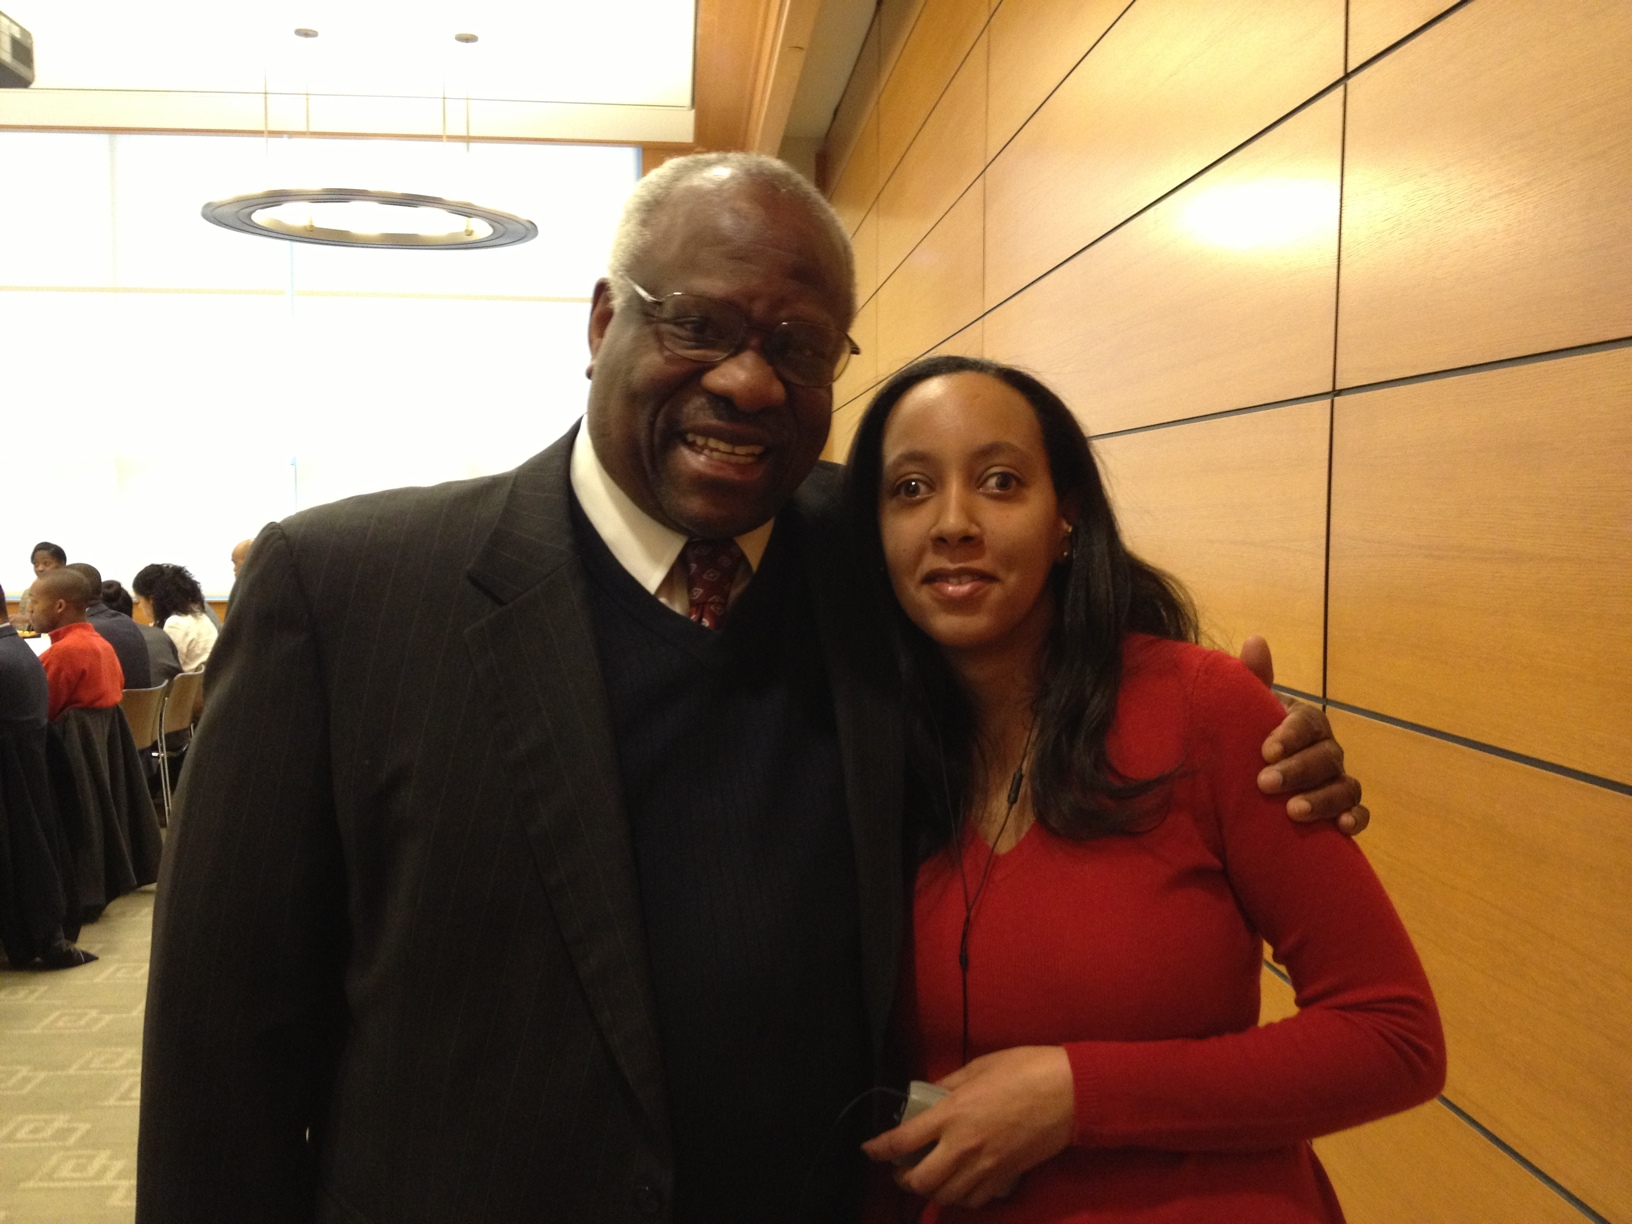 Supreme Court Justice Clarence Thomas and Haben Girma posing together